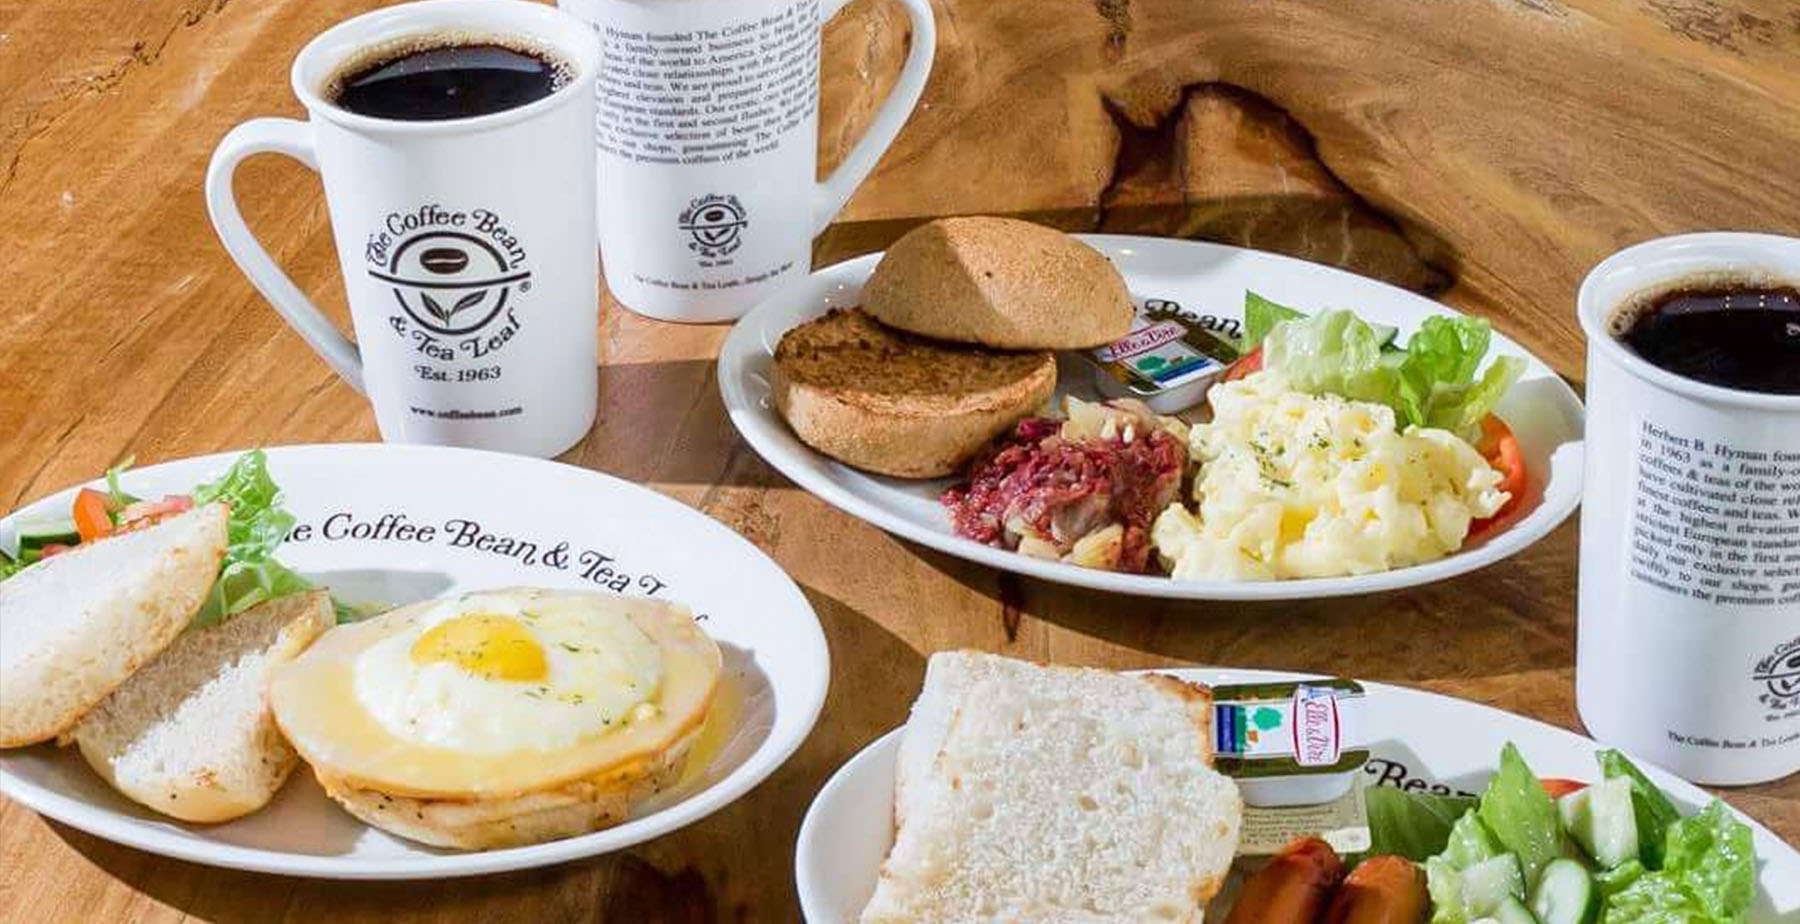 Breakfast dishes and coffee from Coffee Bean and Tea Leaf